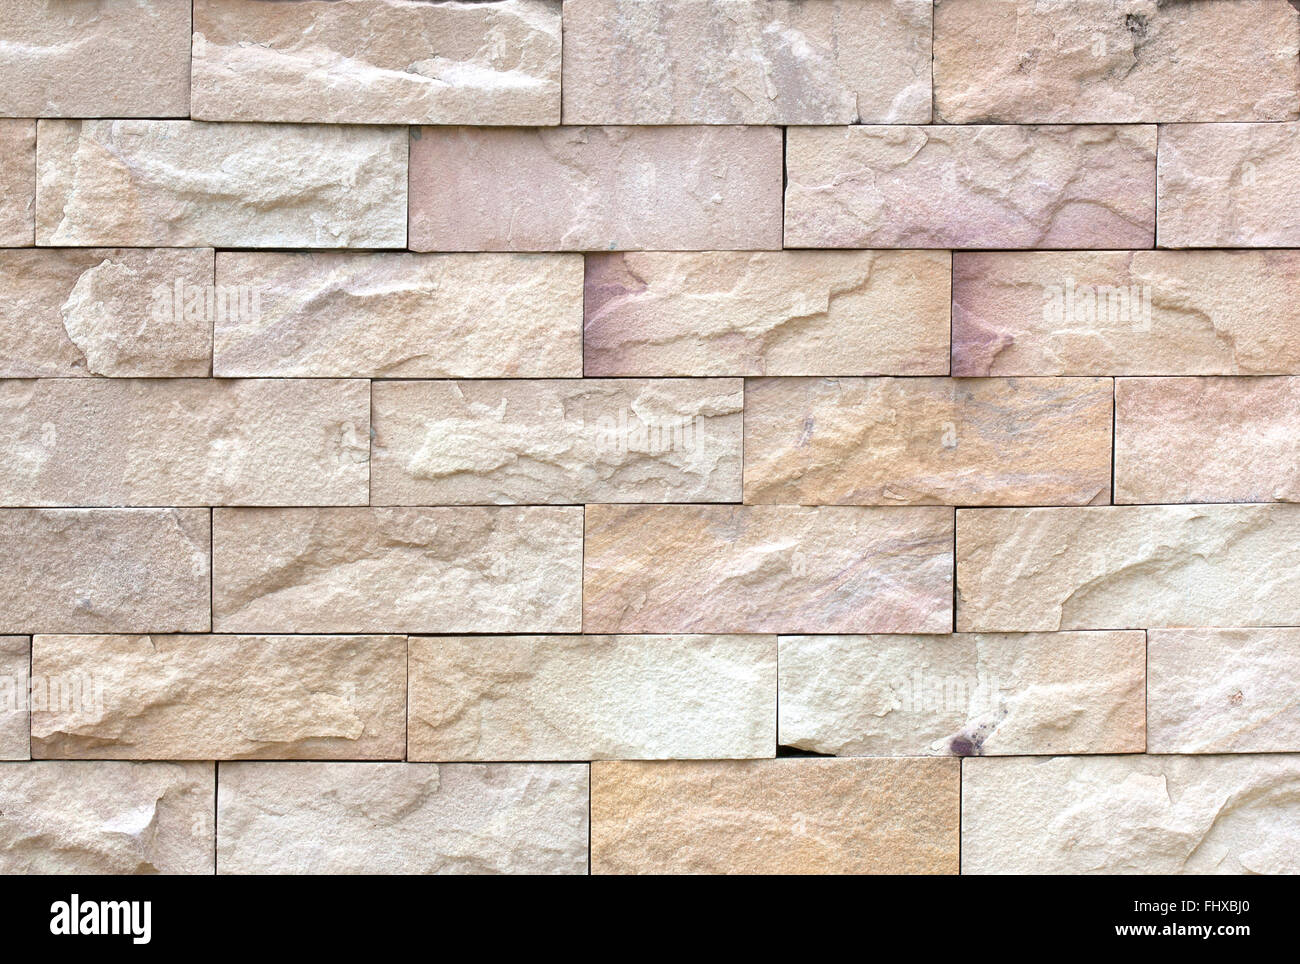 Texture of stone walls exterior durability construction for Exterior wall construction materials